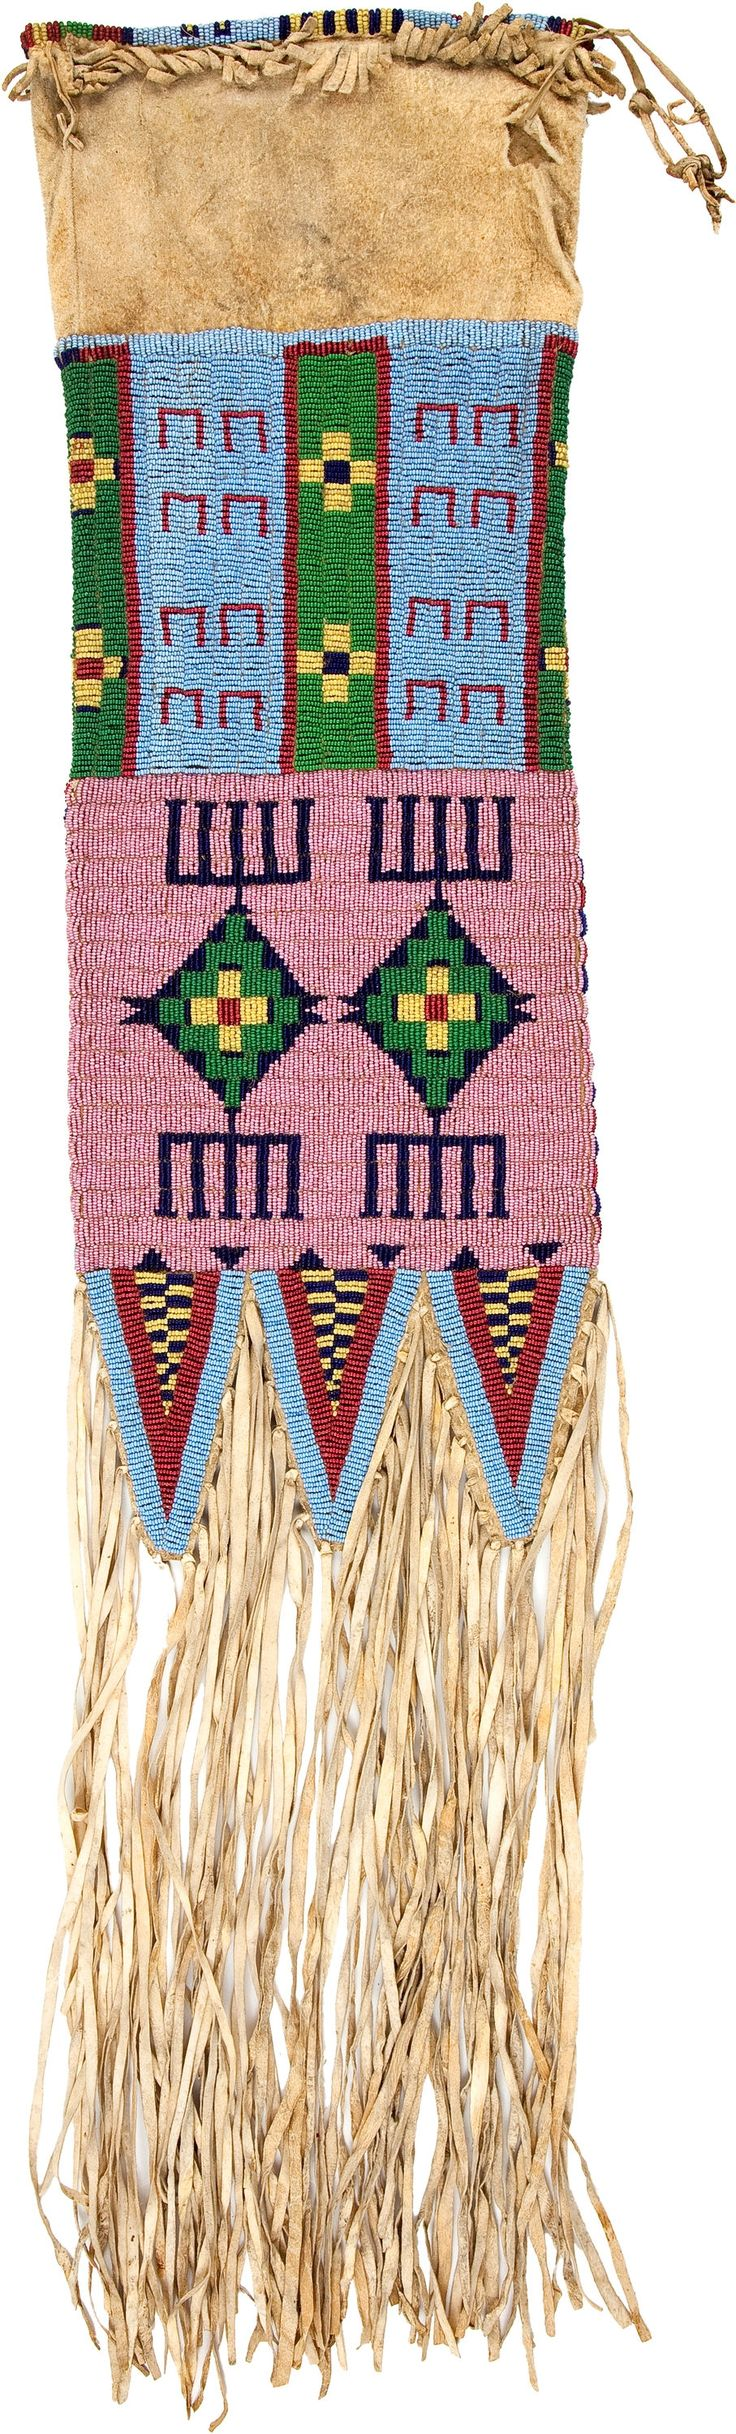 A SIOUX BEADED HIDE TOBACCO BAG. c. 1890... American Indian | Lot #50058 | Heritage Auctions